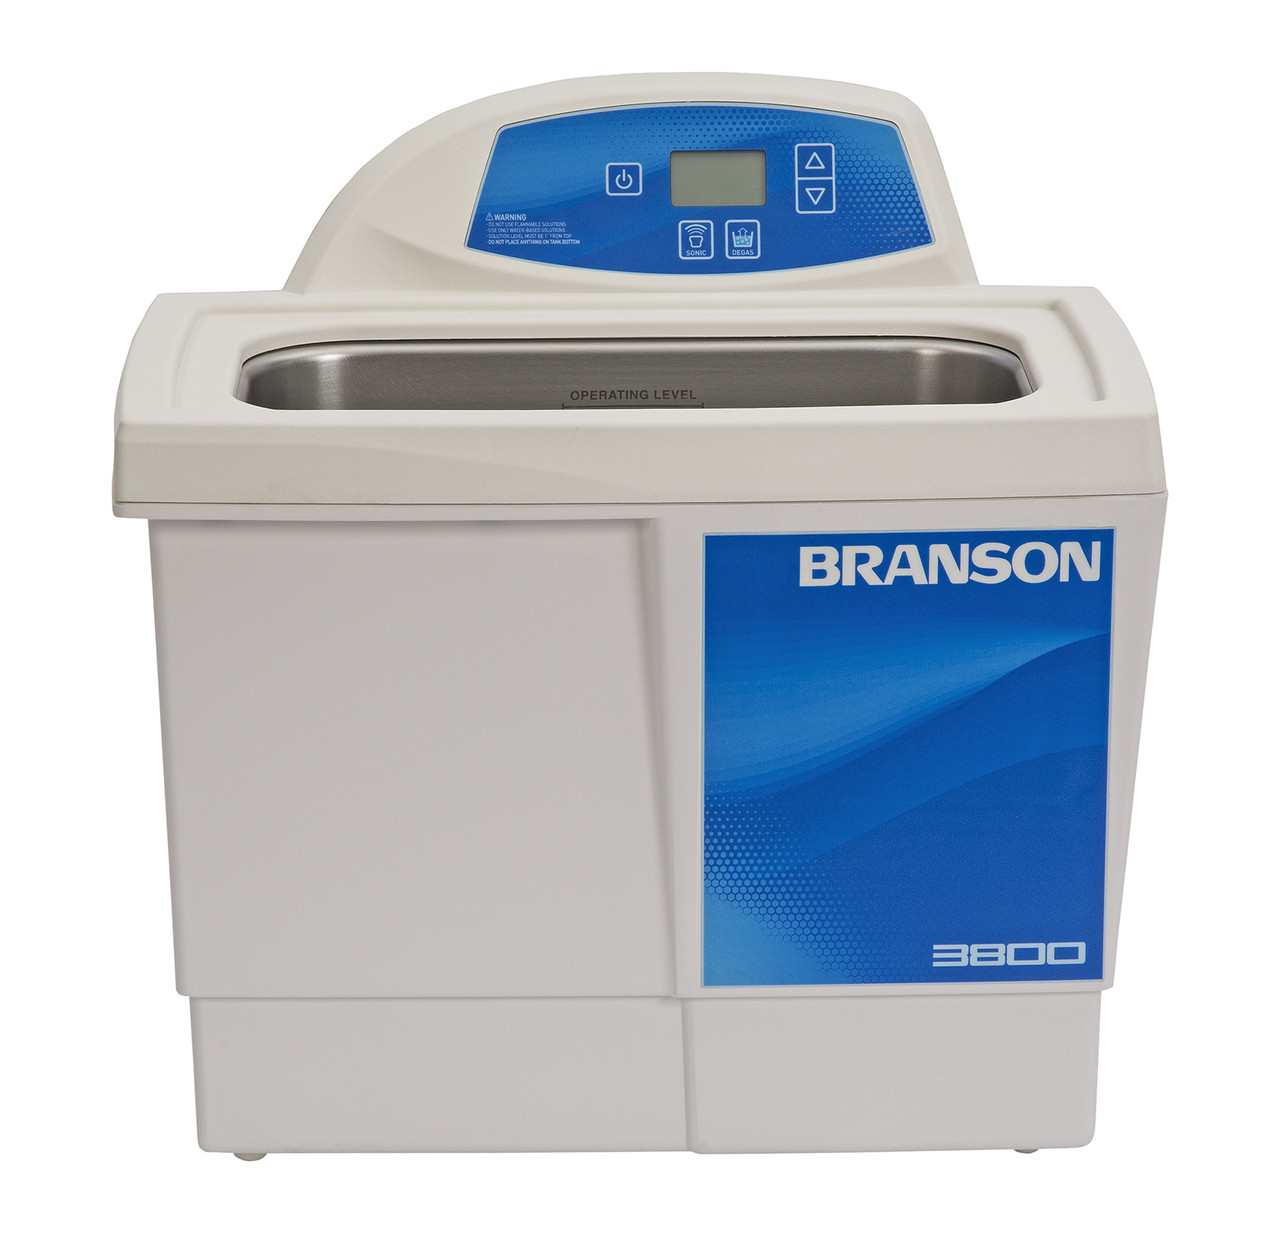 Branson CPX3800 Ultrasonic Cleaner